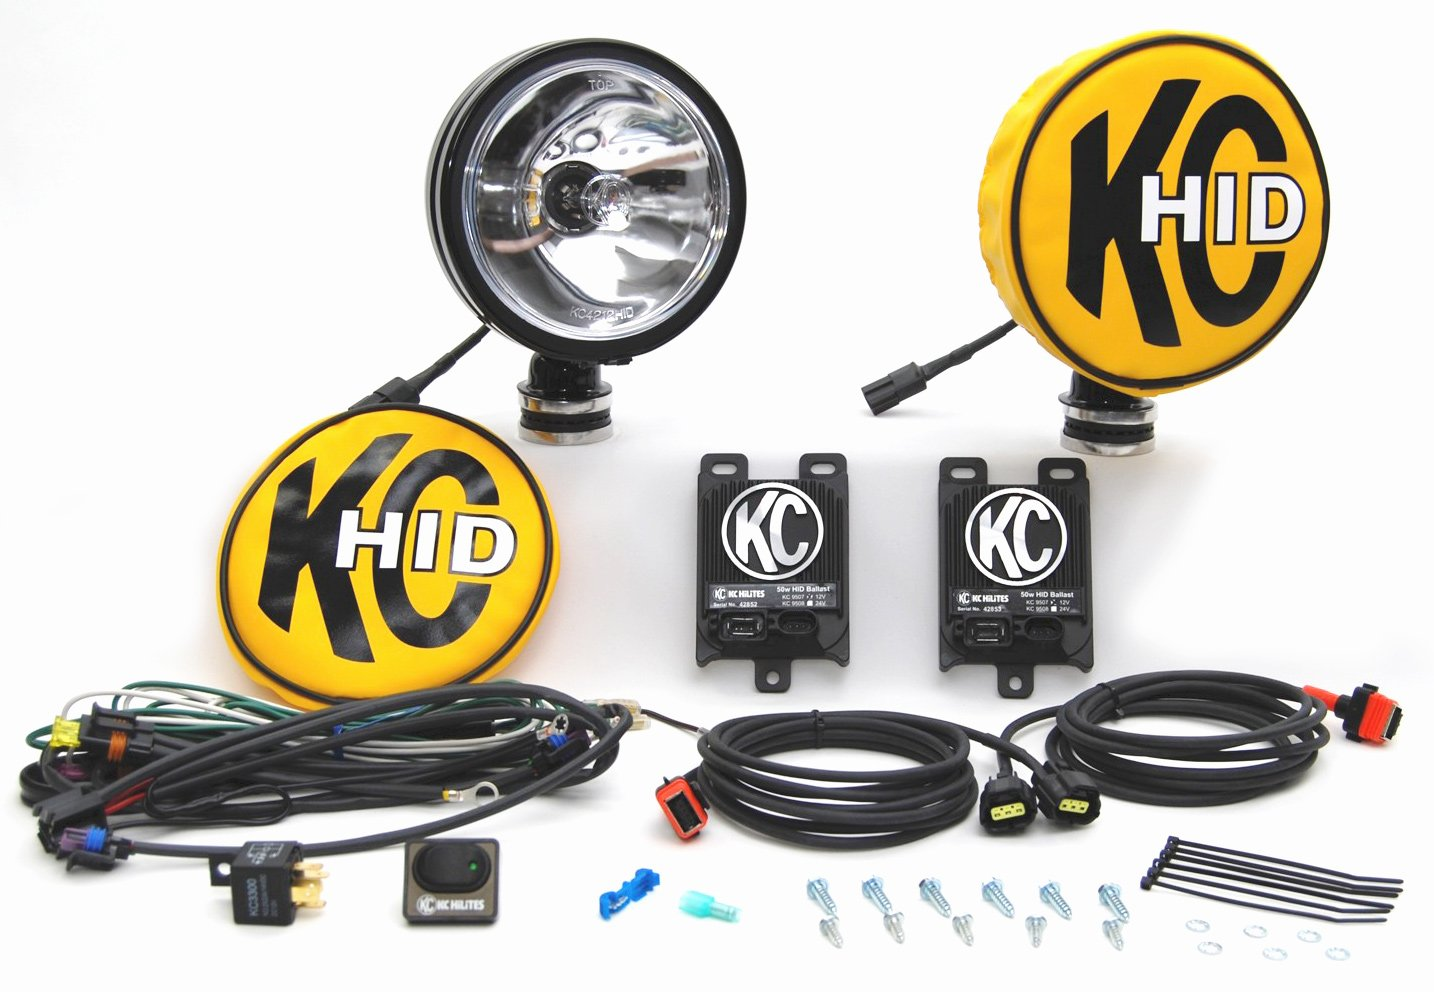 Light Covers Kc Off Road Hid Wiring Diagram Pictures